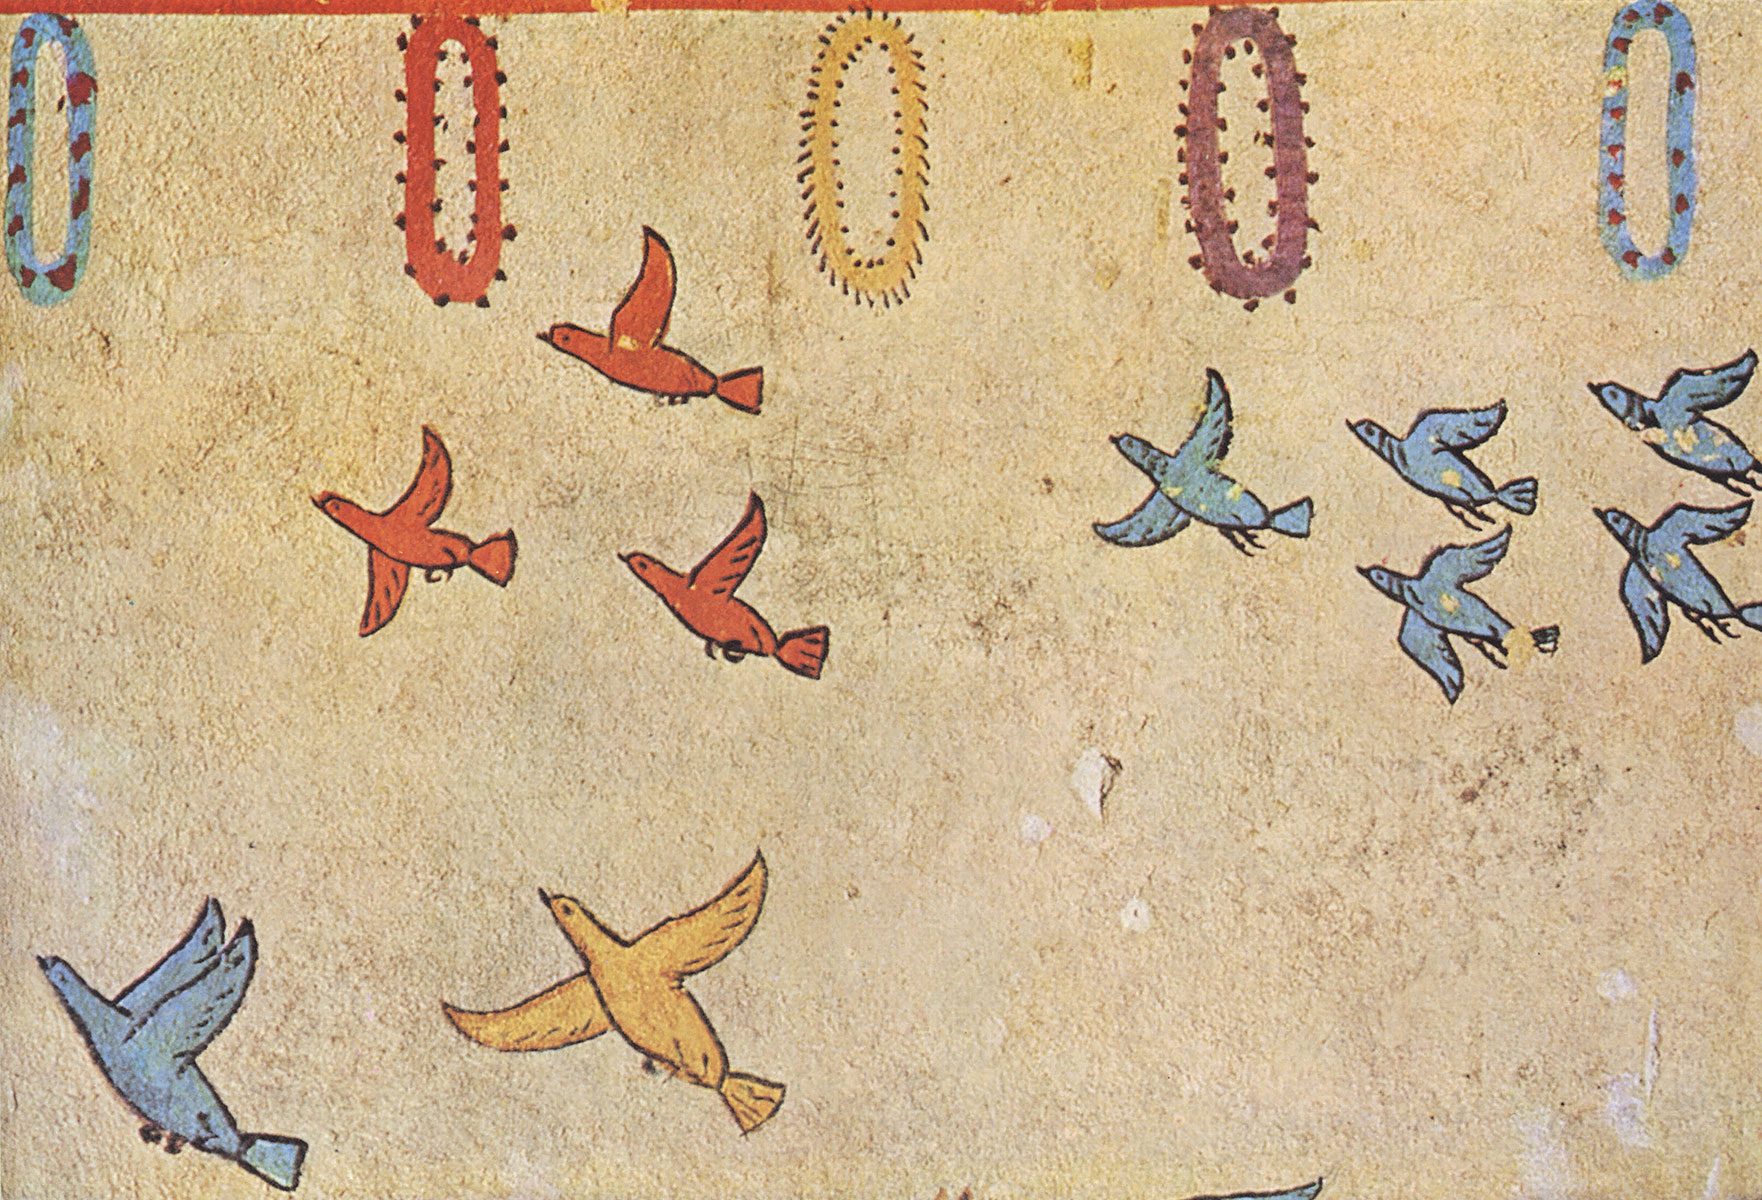 Bird fly. 6th century BCE. Tarquinia, Tomb of the Hunting and Fishing